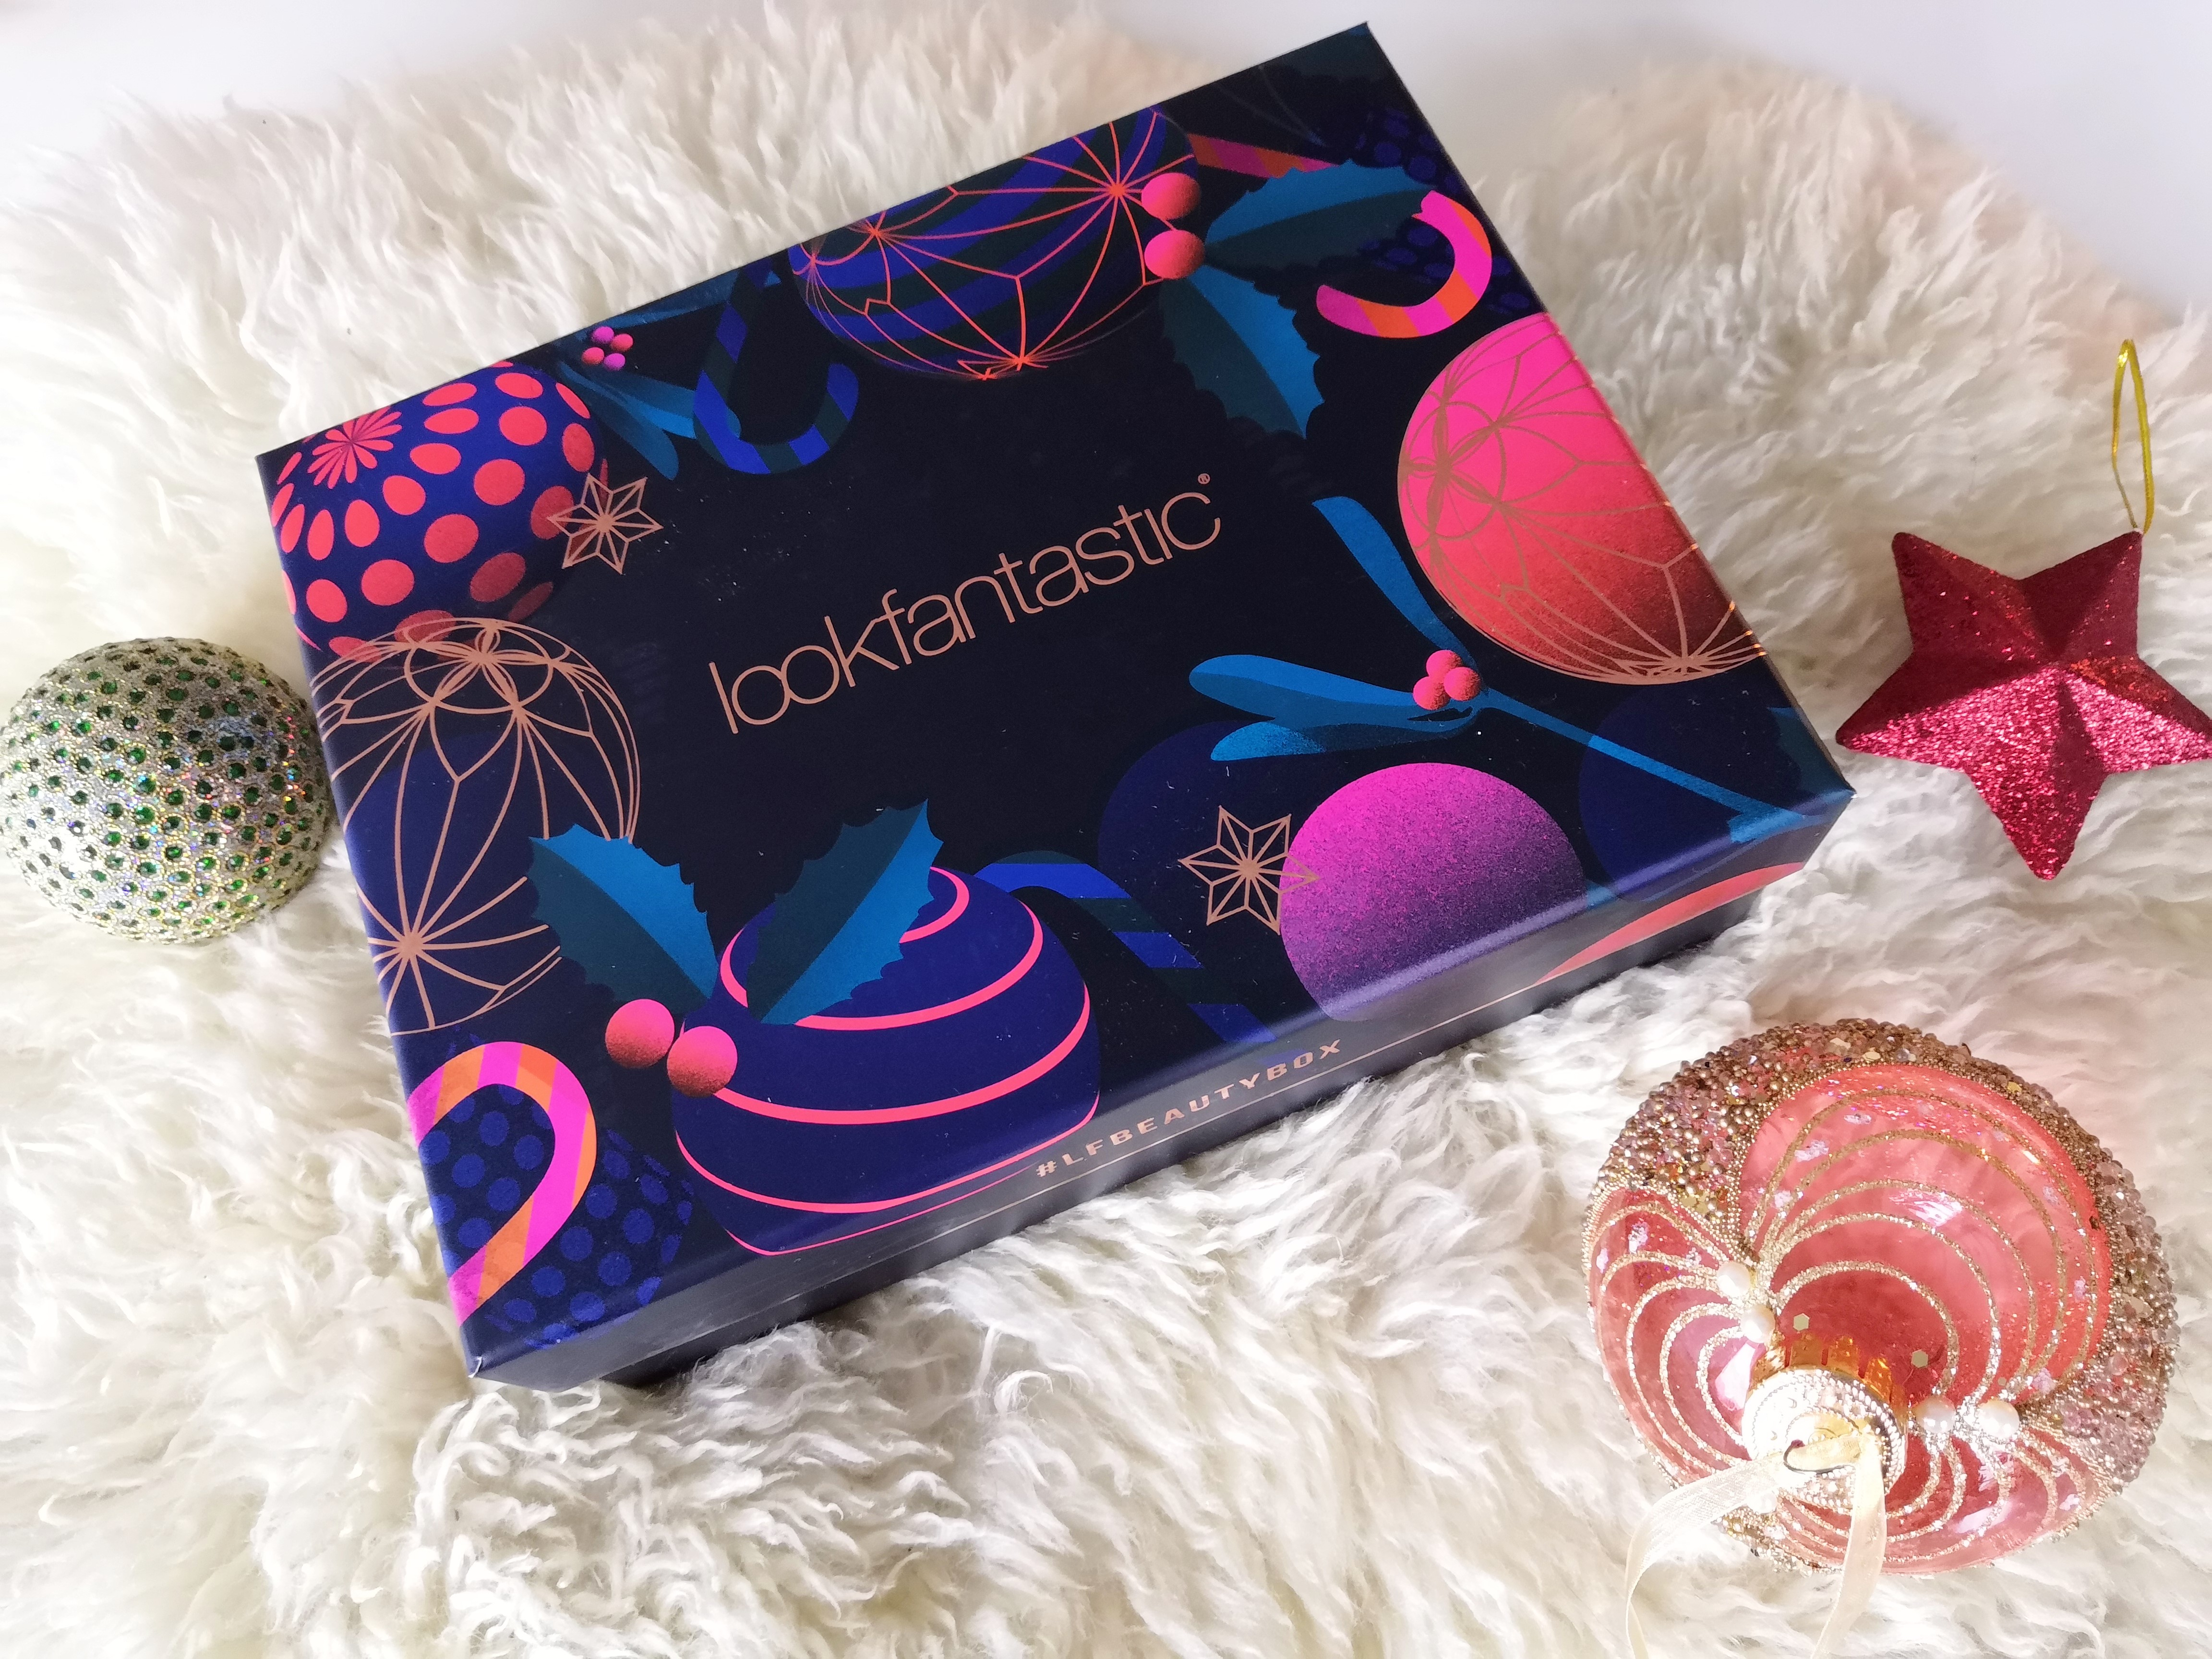 Lookfantastic beauty box Christmas edition